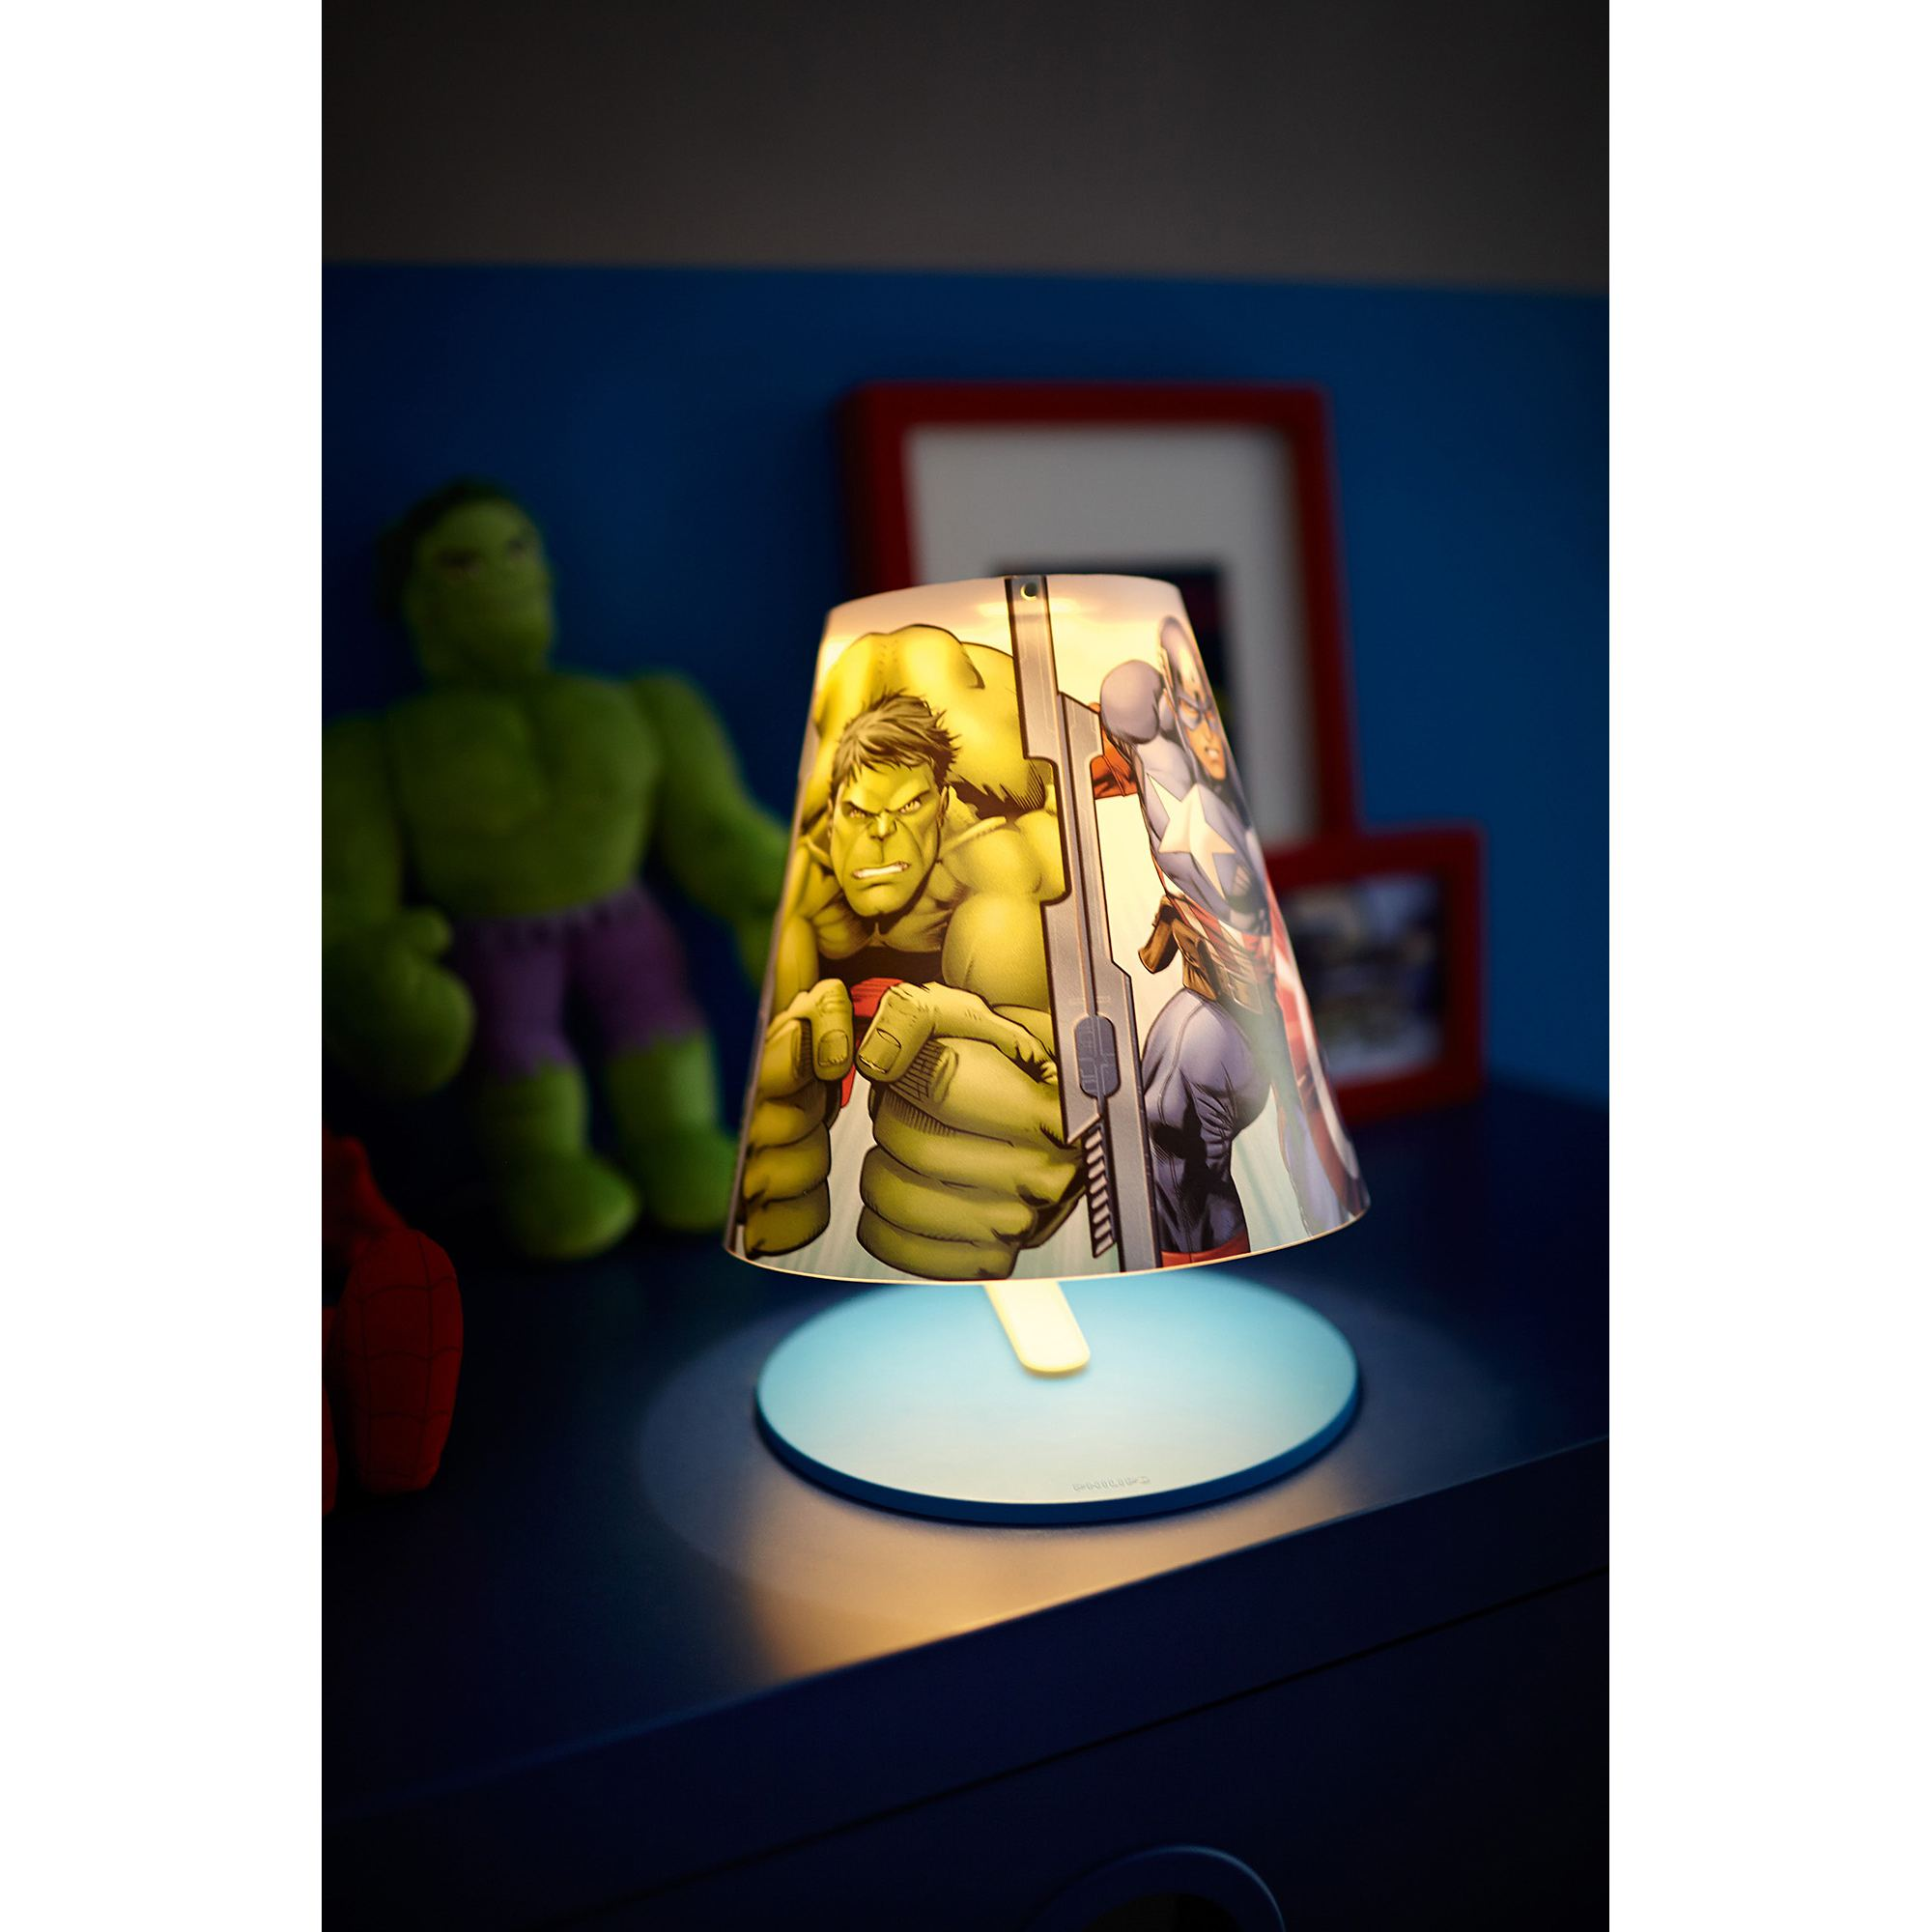 Philips Marvel Avengers LED table lamp table light 3W Thumbnail 3